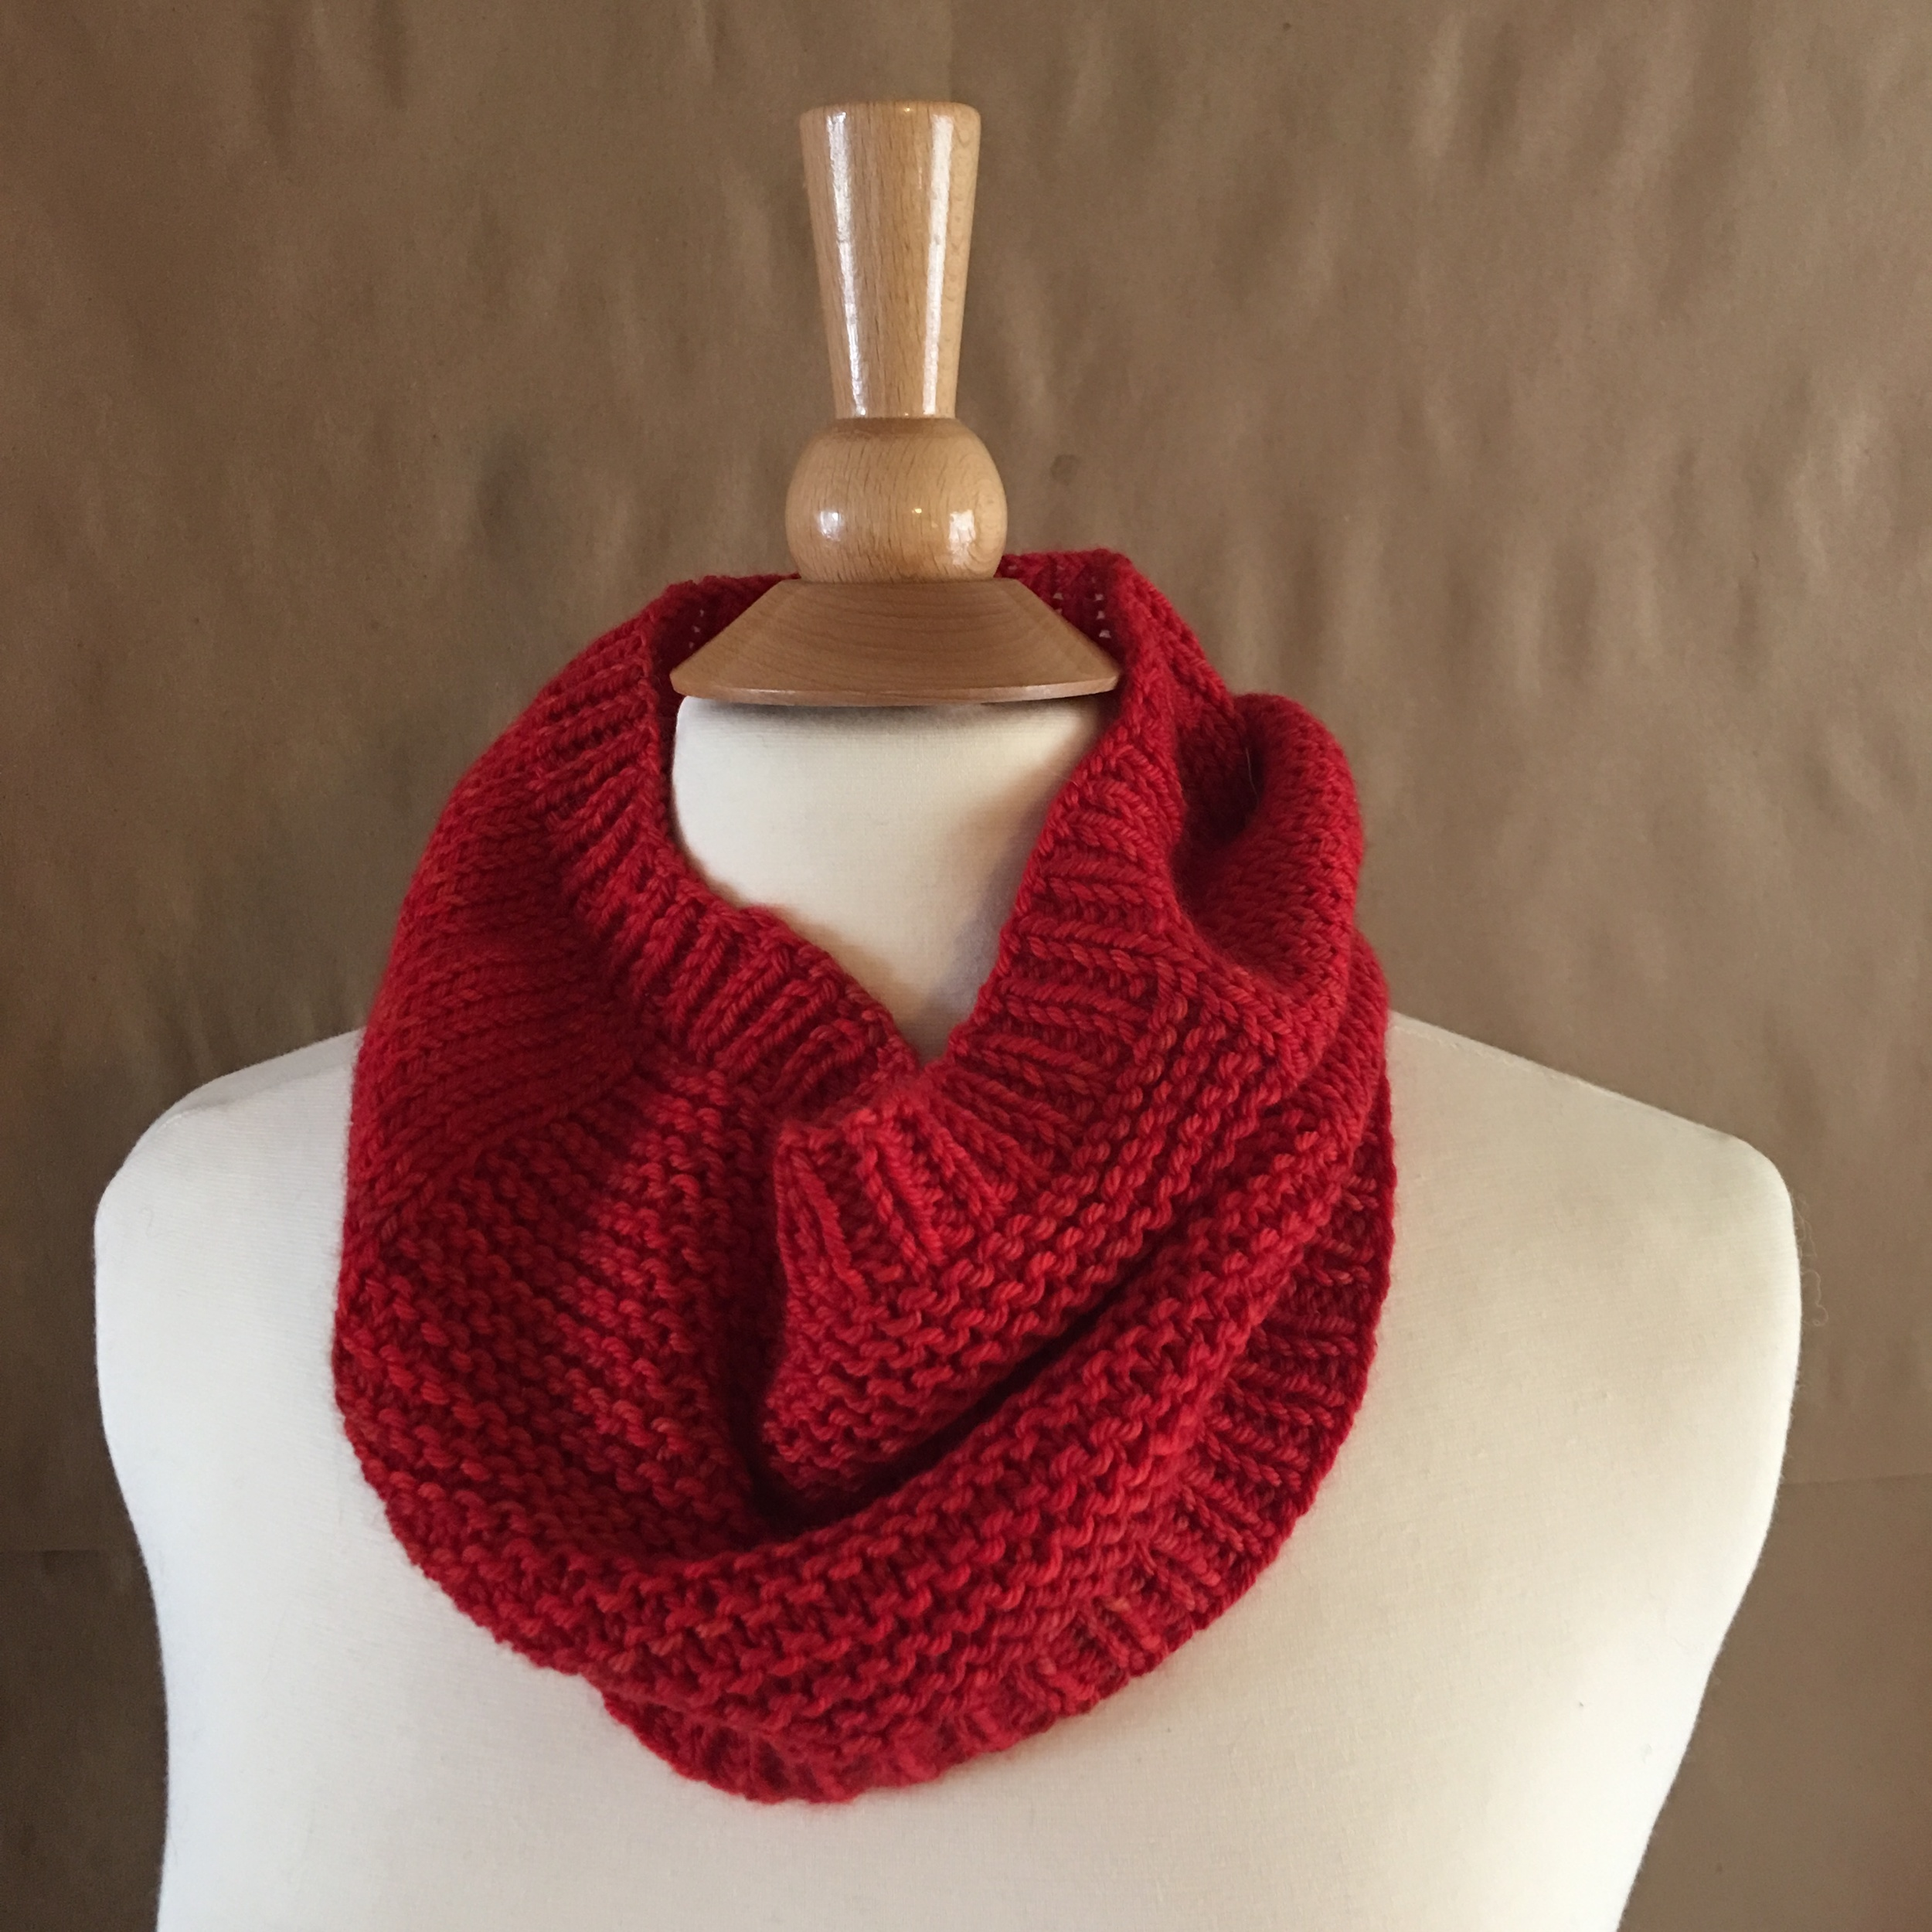 Oats Cowl   by   Tin Can Knits   in   Superwash Worsted   color Blood Orange